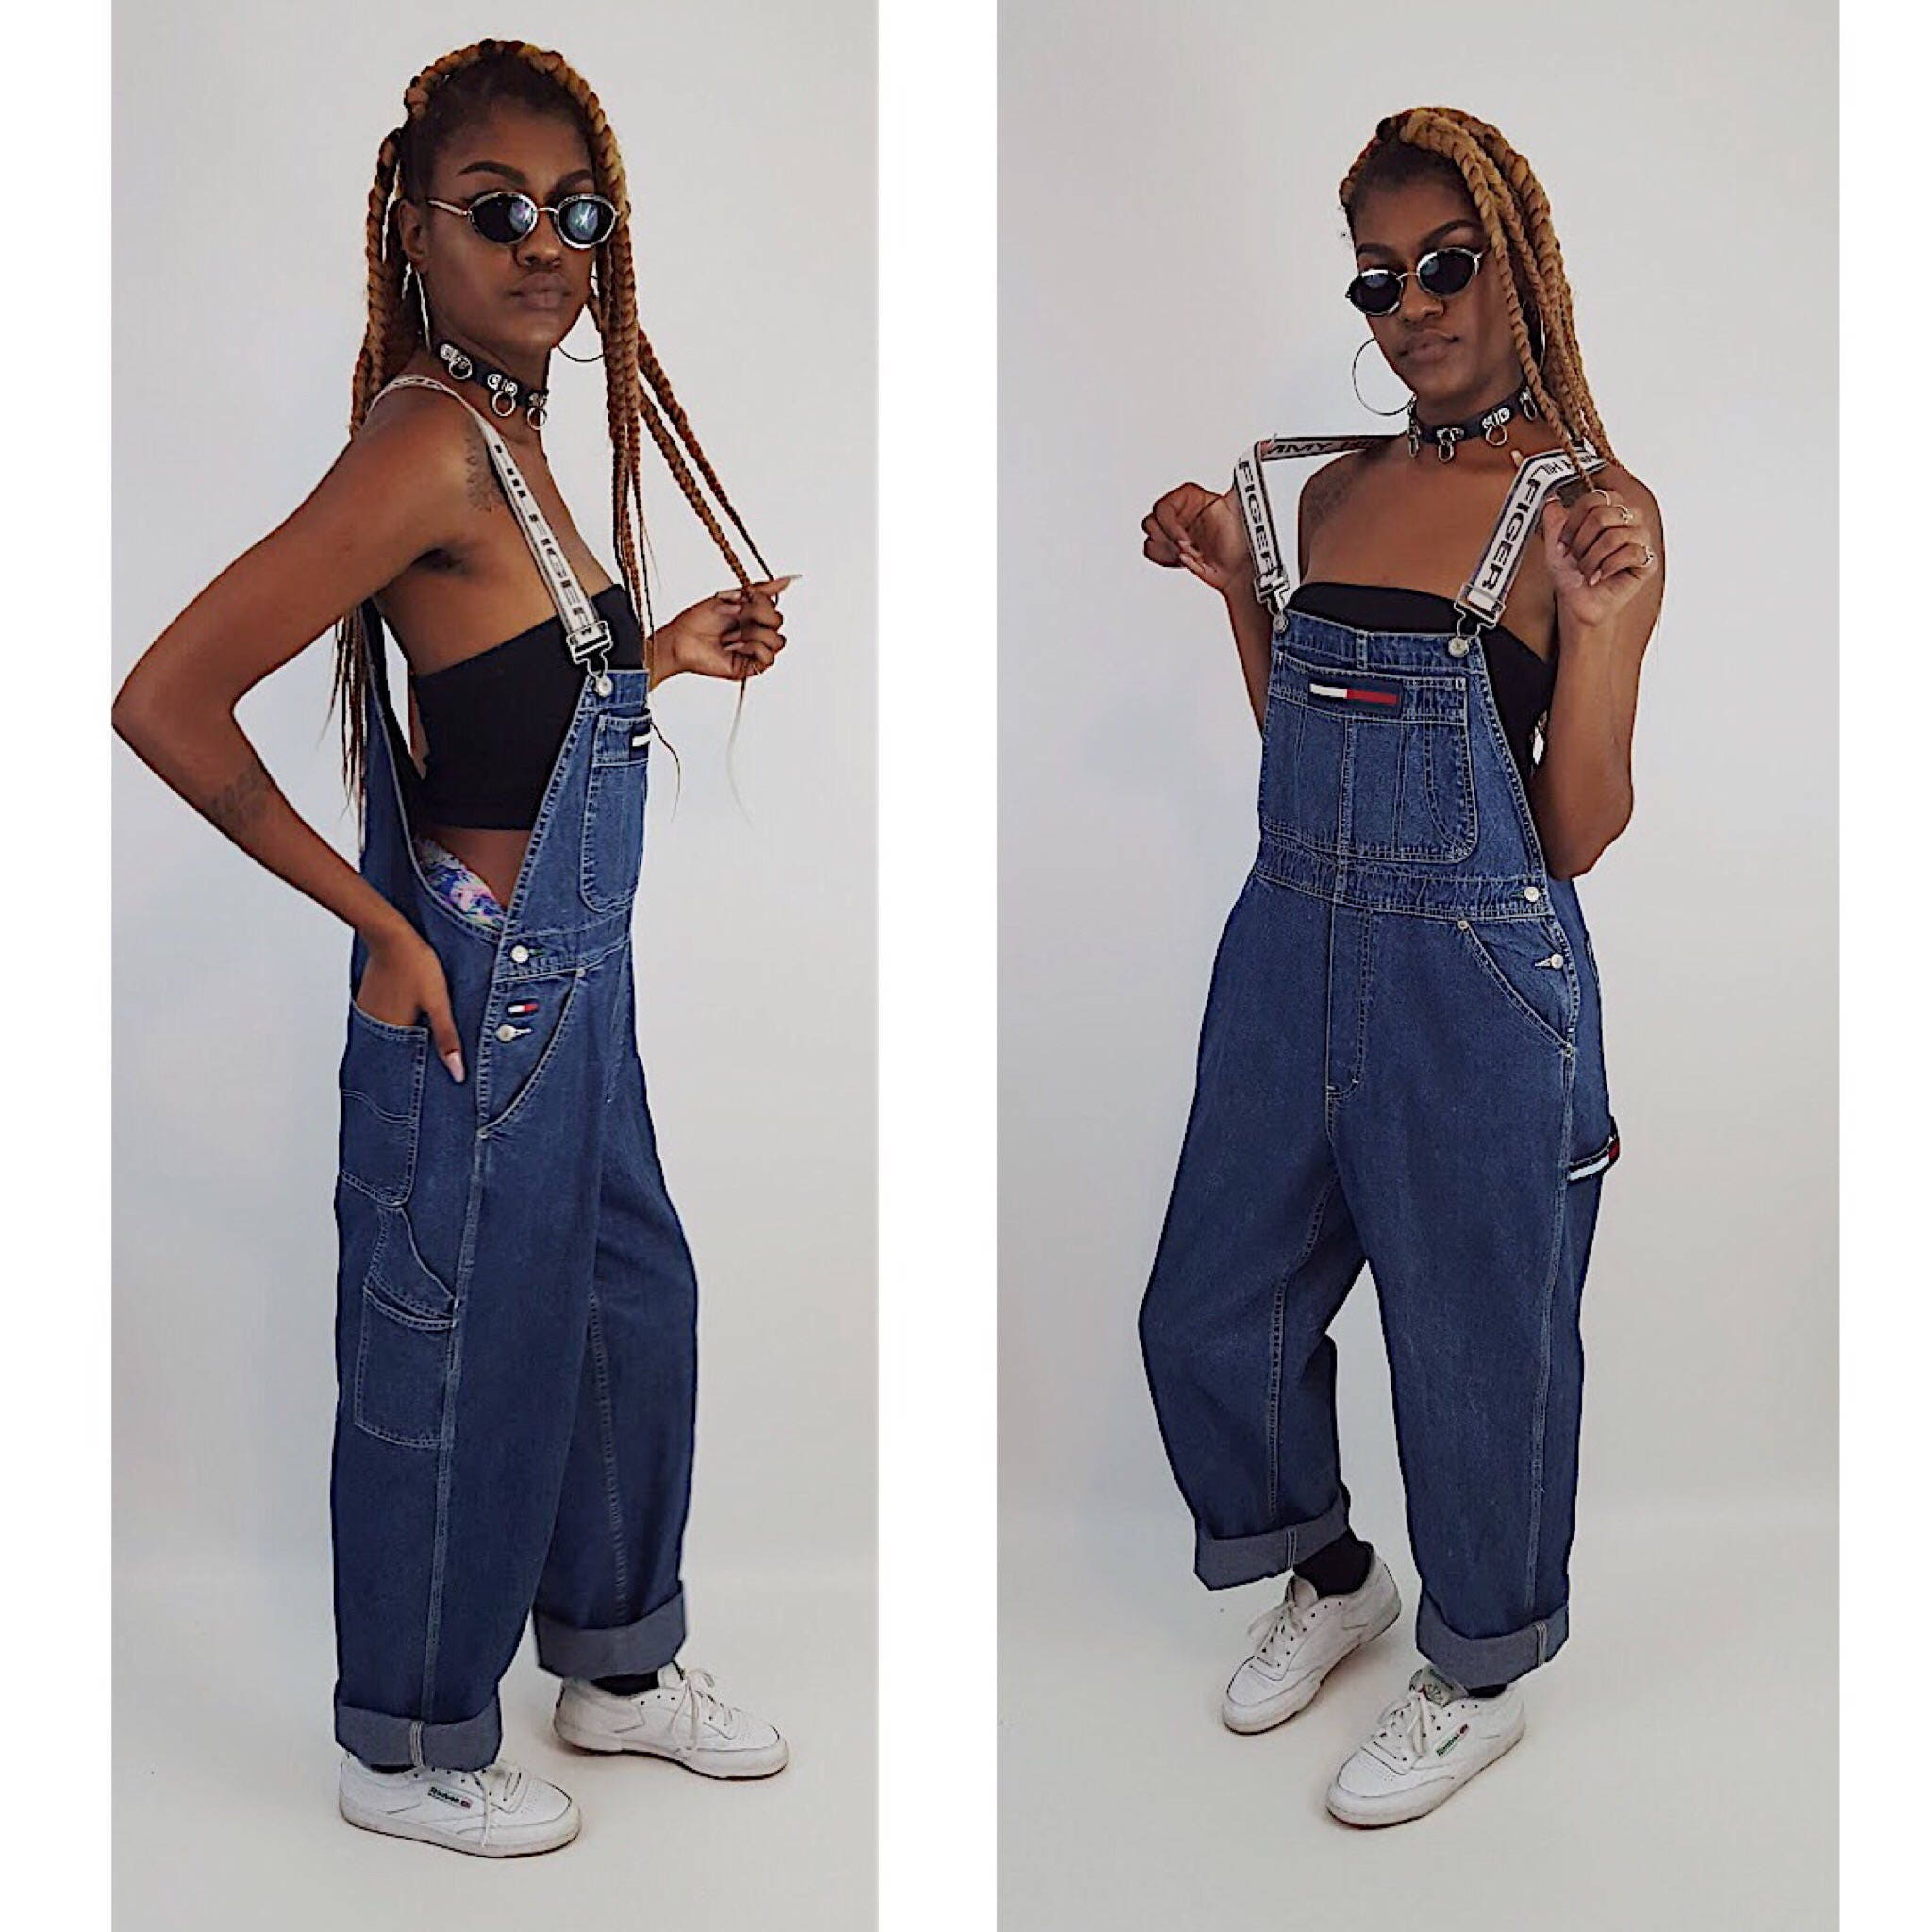 e690bfe05c6 ... Overalls Tommy Jeans Logo Pant Jeans. gallery photo gallery photo  gallery photo gallery photo ...